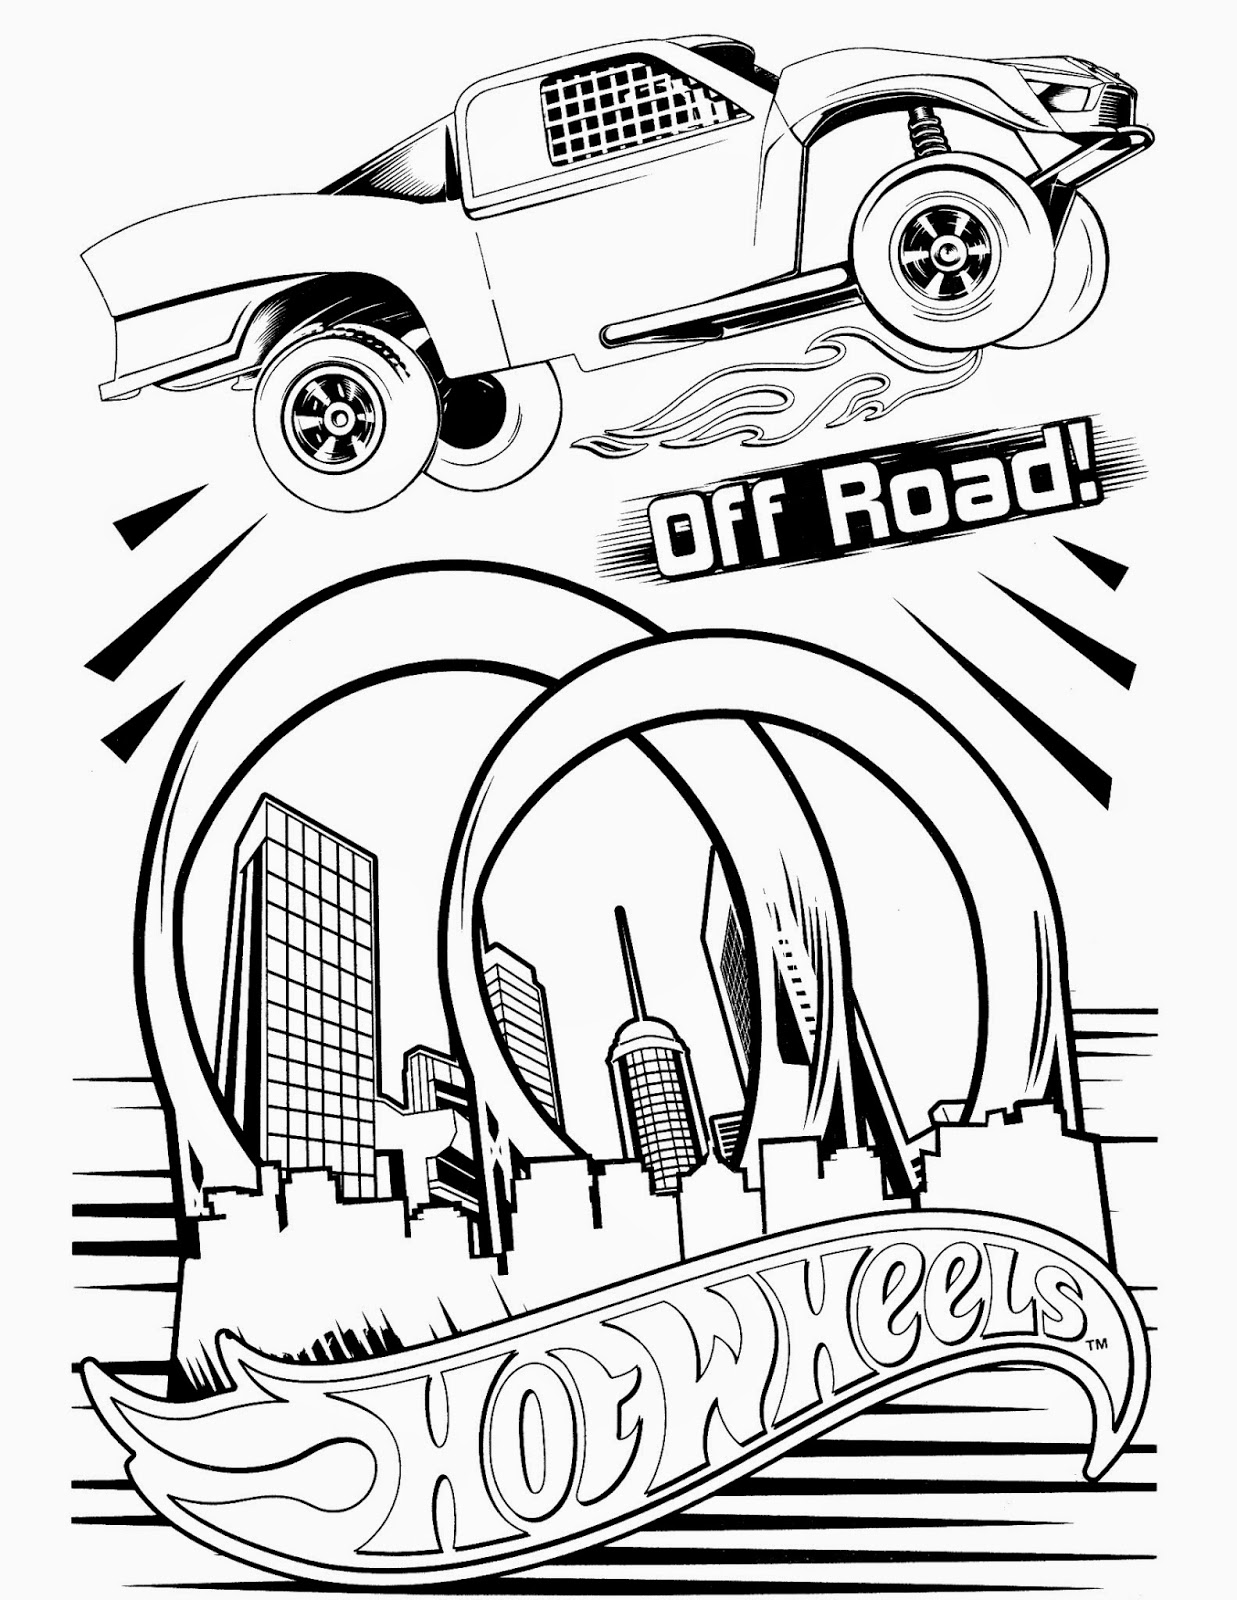 hot wheels cars pictures to color matchbox cars coloring pages color pictures hot wheels cars to